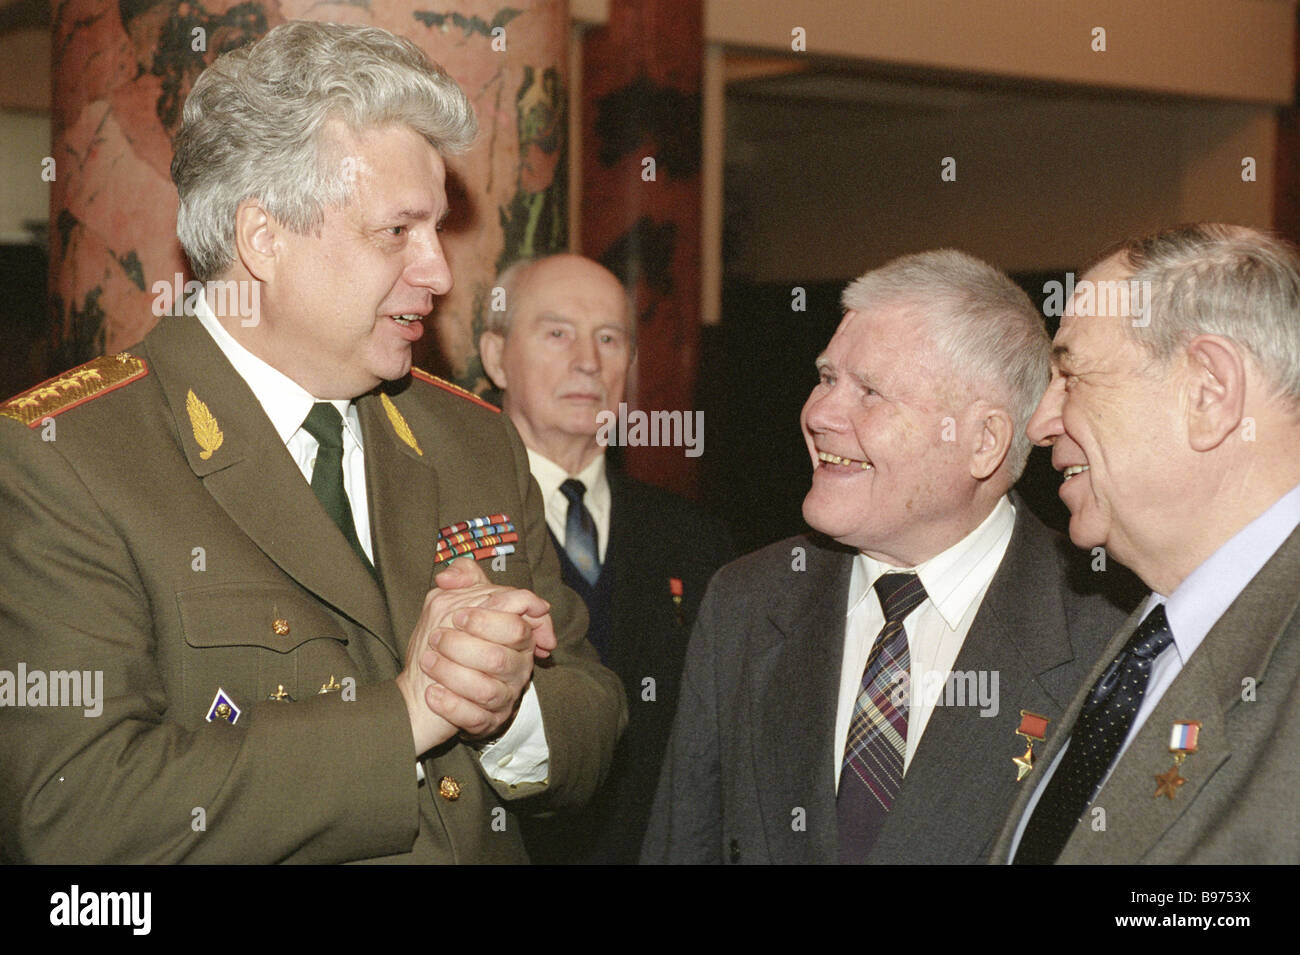 State Duma deputy Nikolai Kovalyov left talks to veterans who attended an official function at the Cultural Center - Stock Image